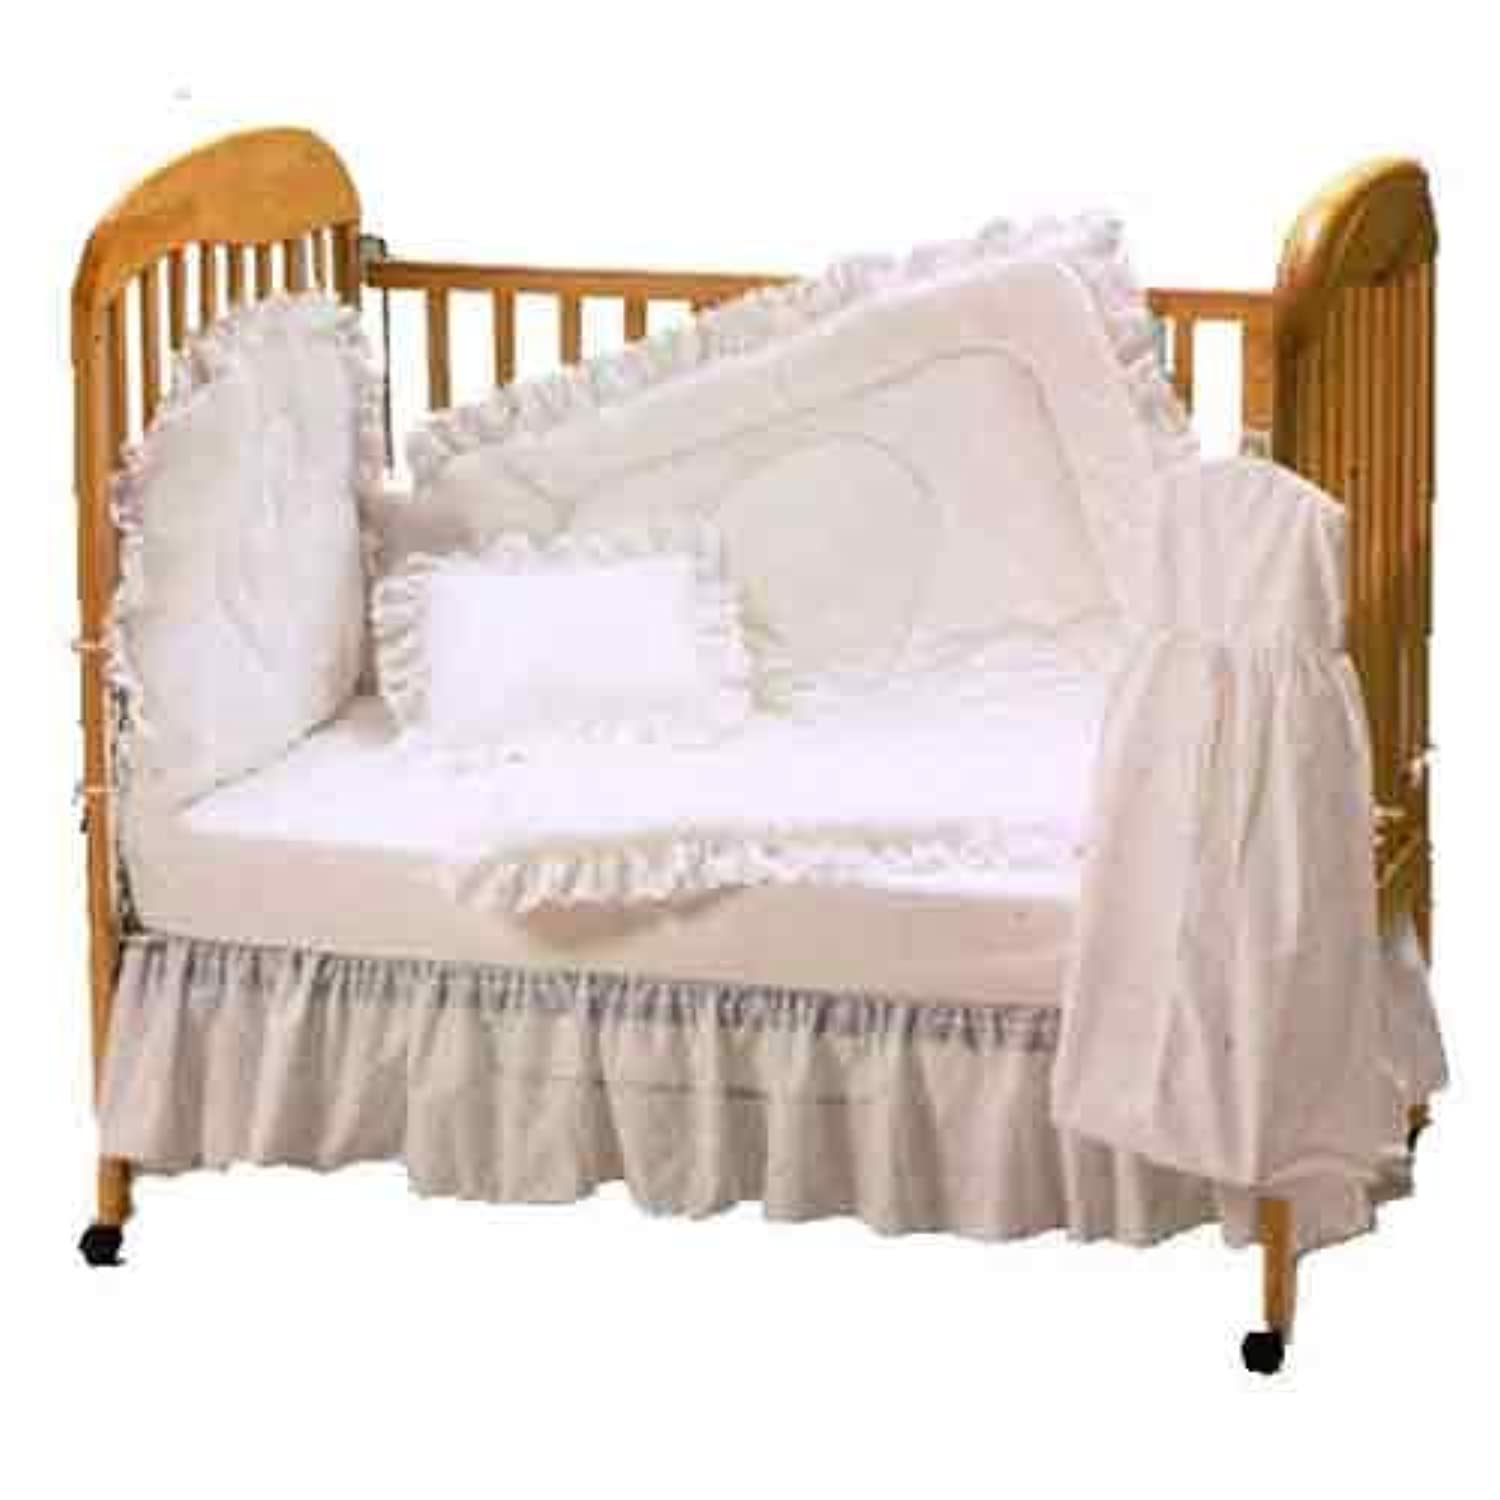 Baby Doll Bedding Carnation Eyelet Mini Crib/ Port-a-Crib Set, White by BabyDoll Bedding